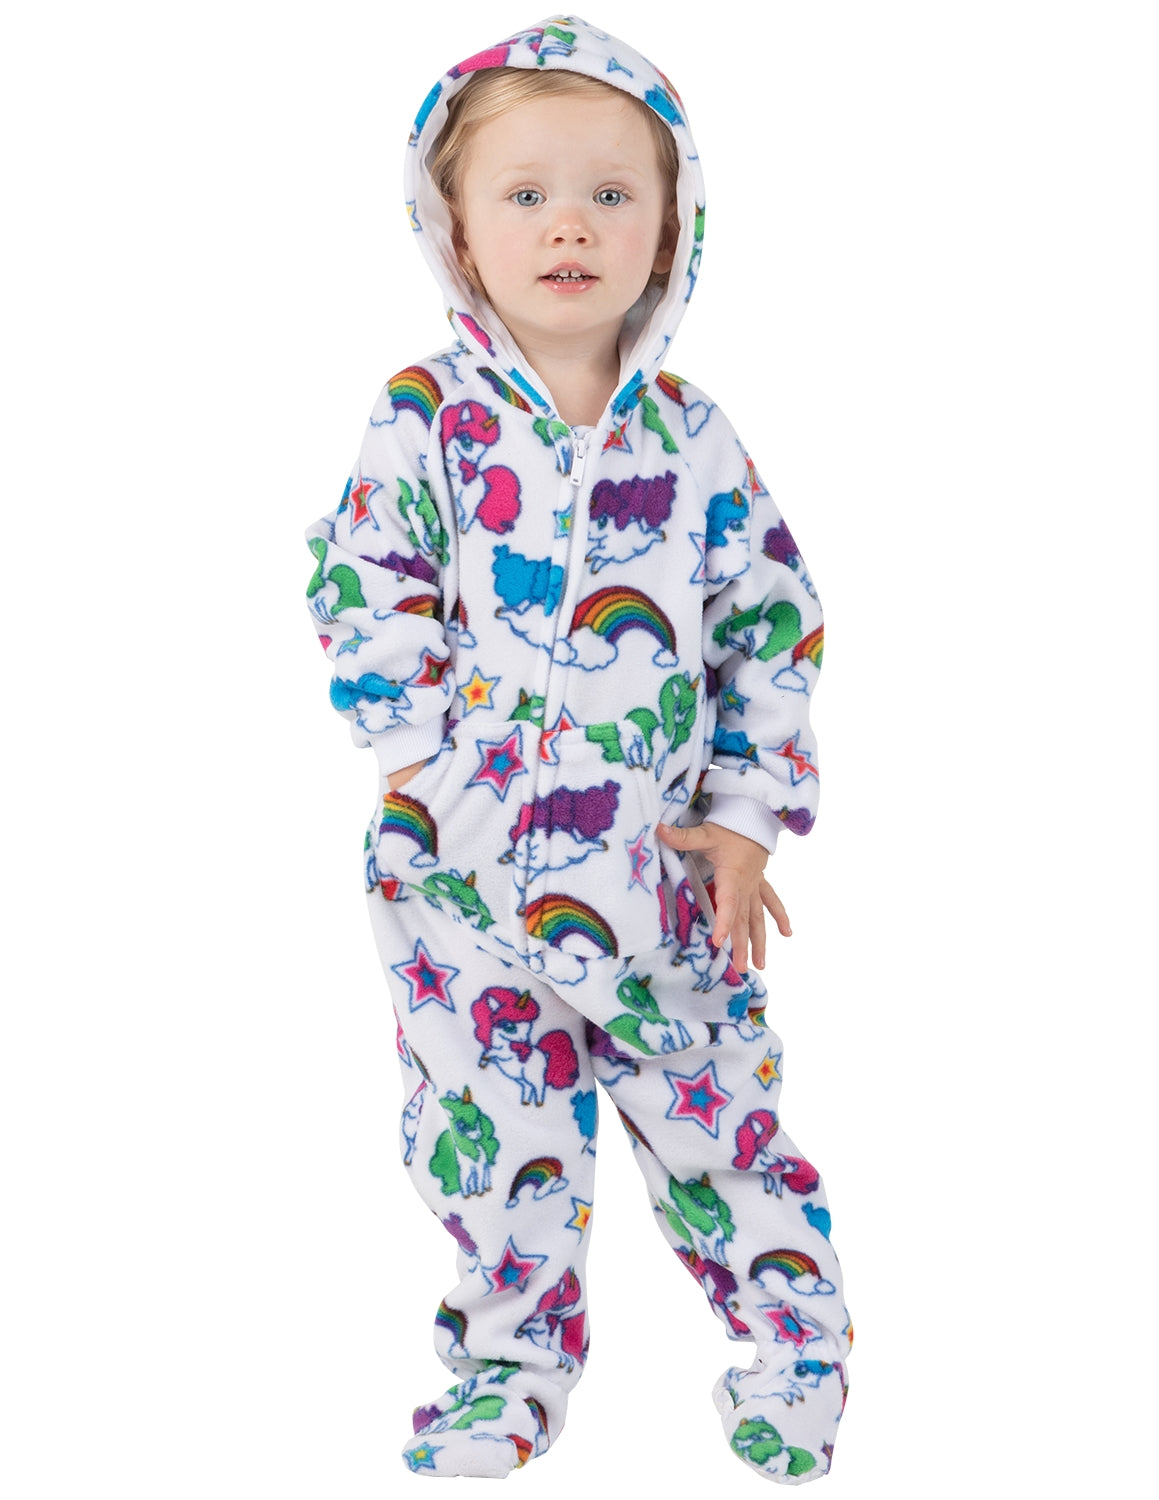 Rainbows N' Unicorns Infant Hoodie Fleece Onesie